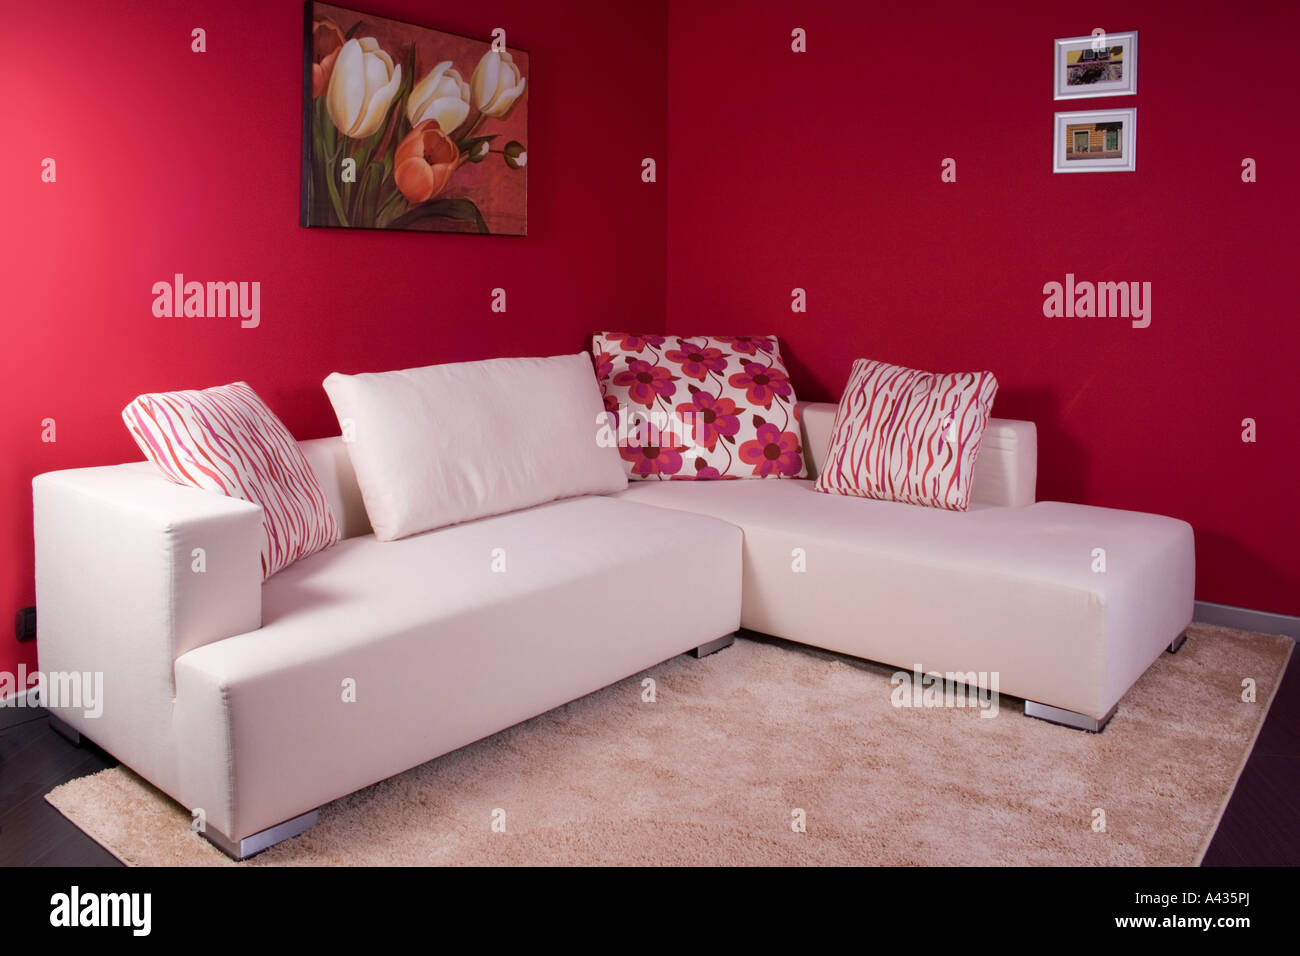 Excellent White Fabric Corner Sofa Stock Photo 10918361 Alamy Caraccident5 Cool Chair Designs And Ideas Caraccident5Info